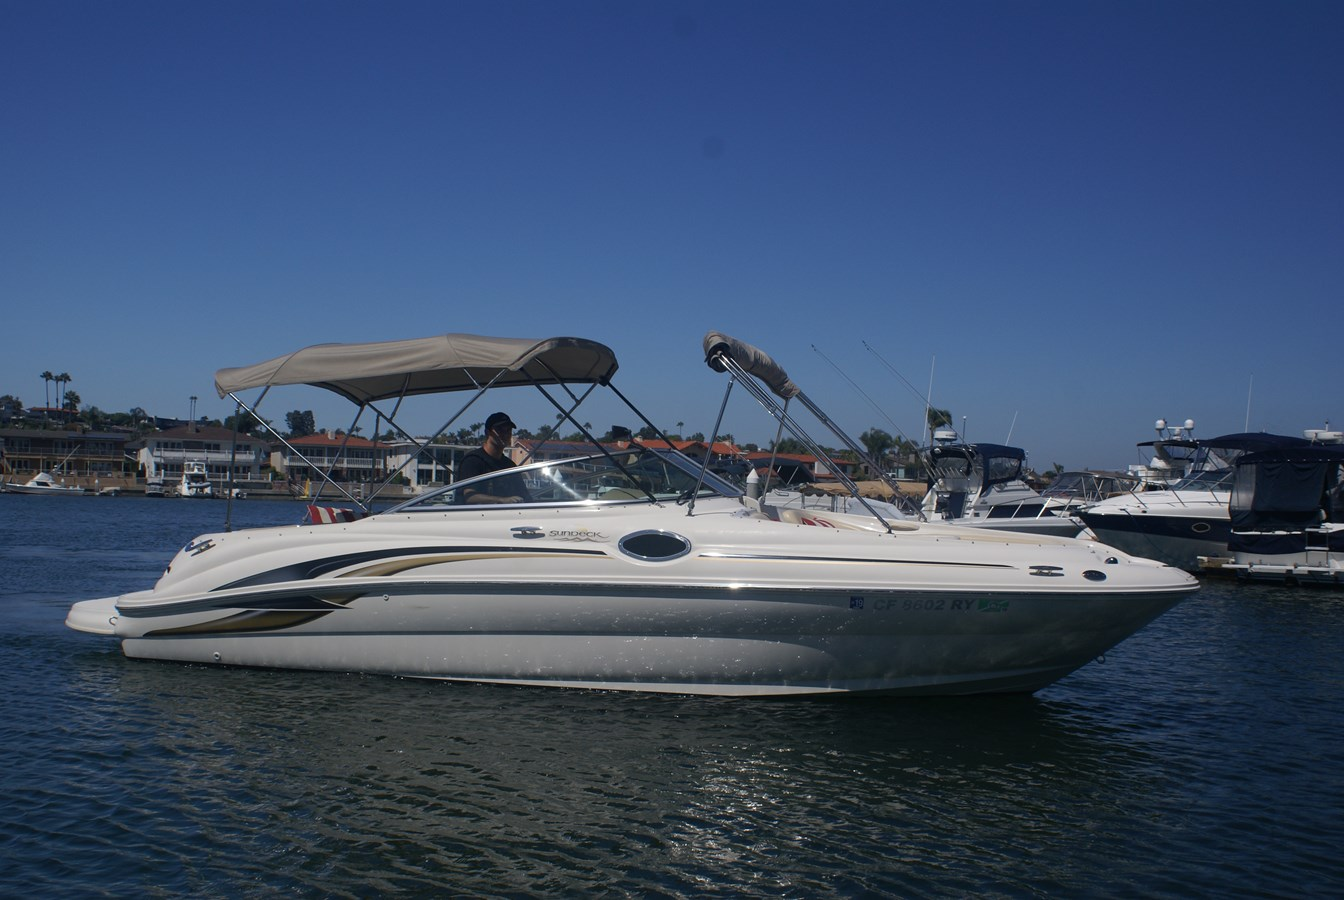 """Starboard """"On the Water"""" 2001 SEA RAY 240 Sun Deck Deck Boat 2674780"""